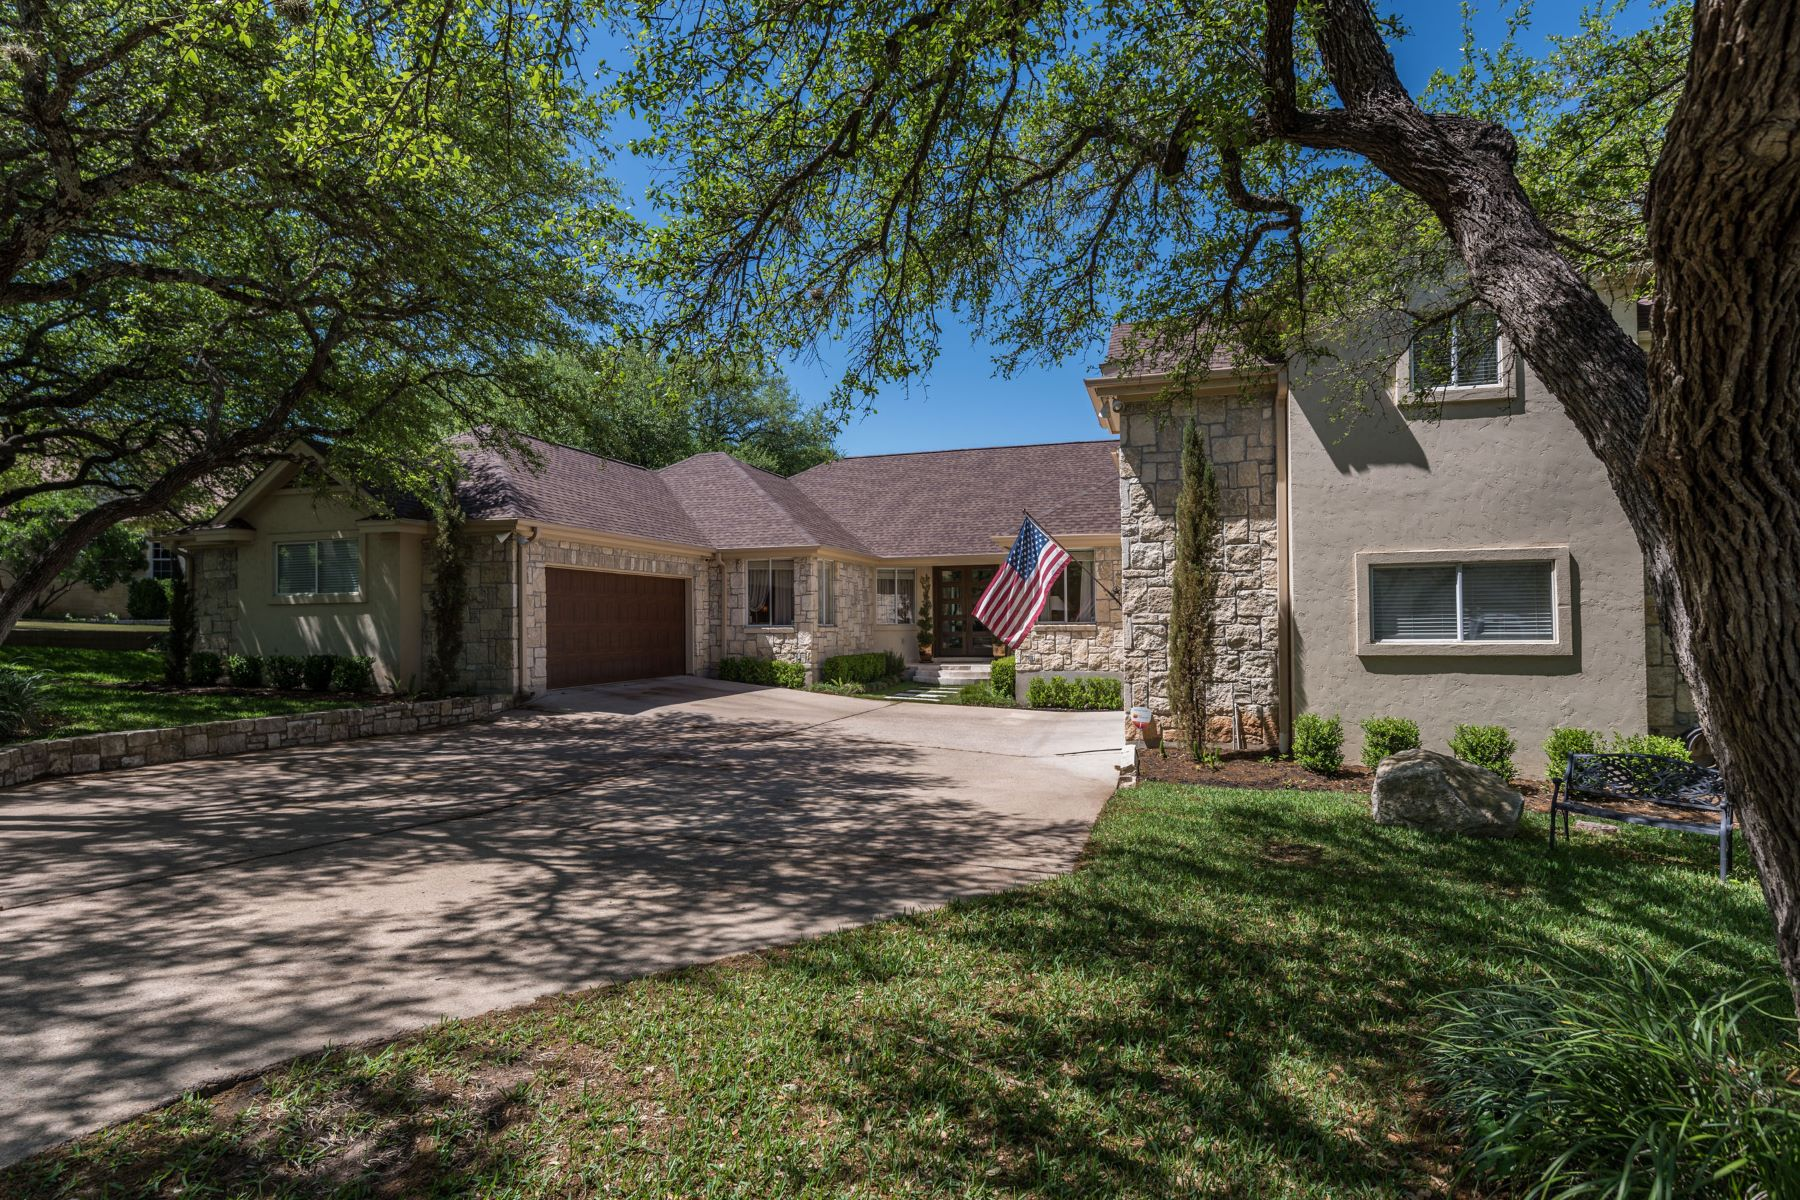 Single Family Home for Sale at Convenient Living in a Desirable Neighborhood 4000 Kaywood Ct Bee Cave, Texas 78738 United States